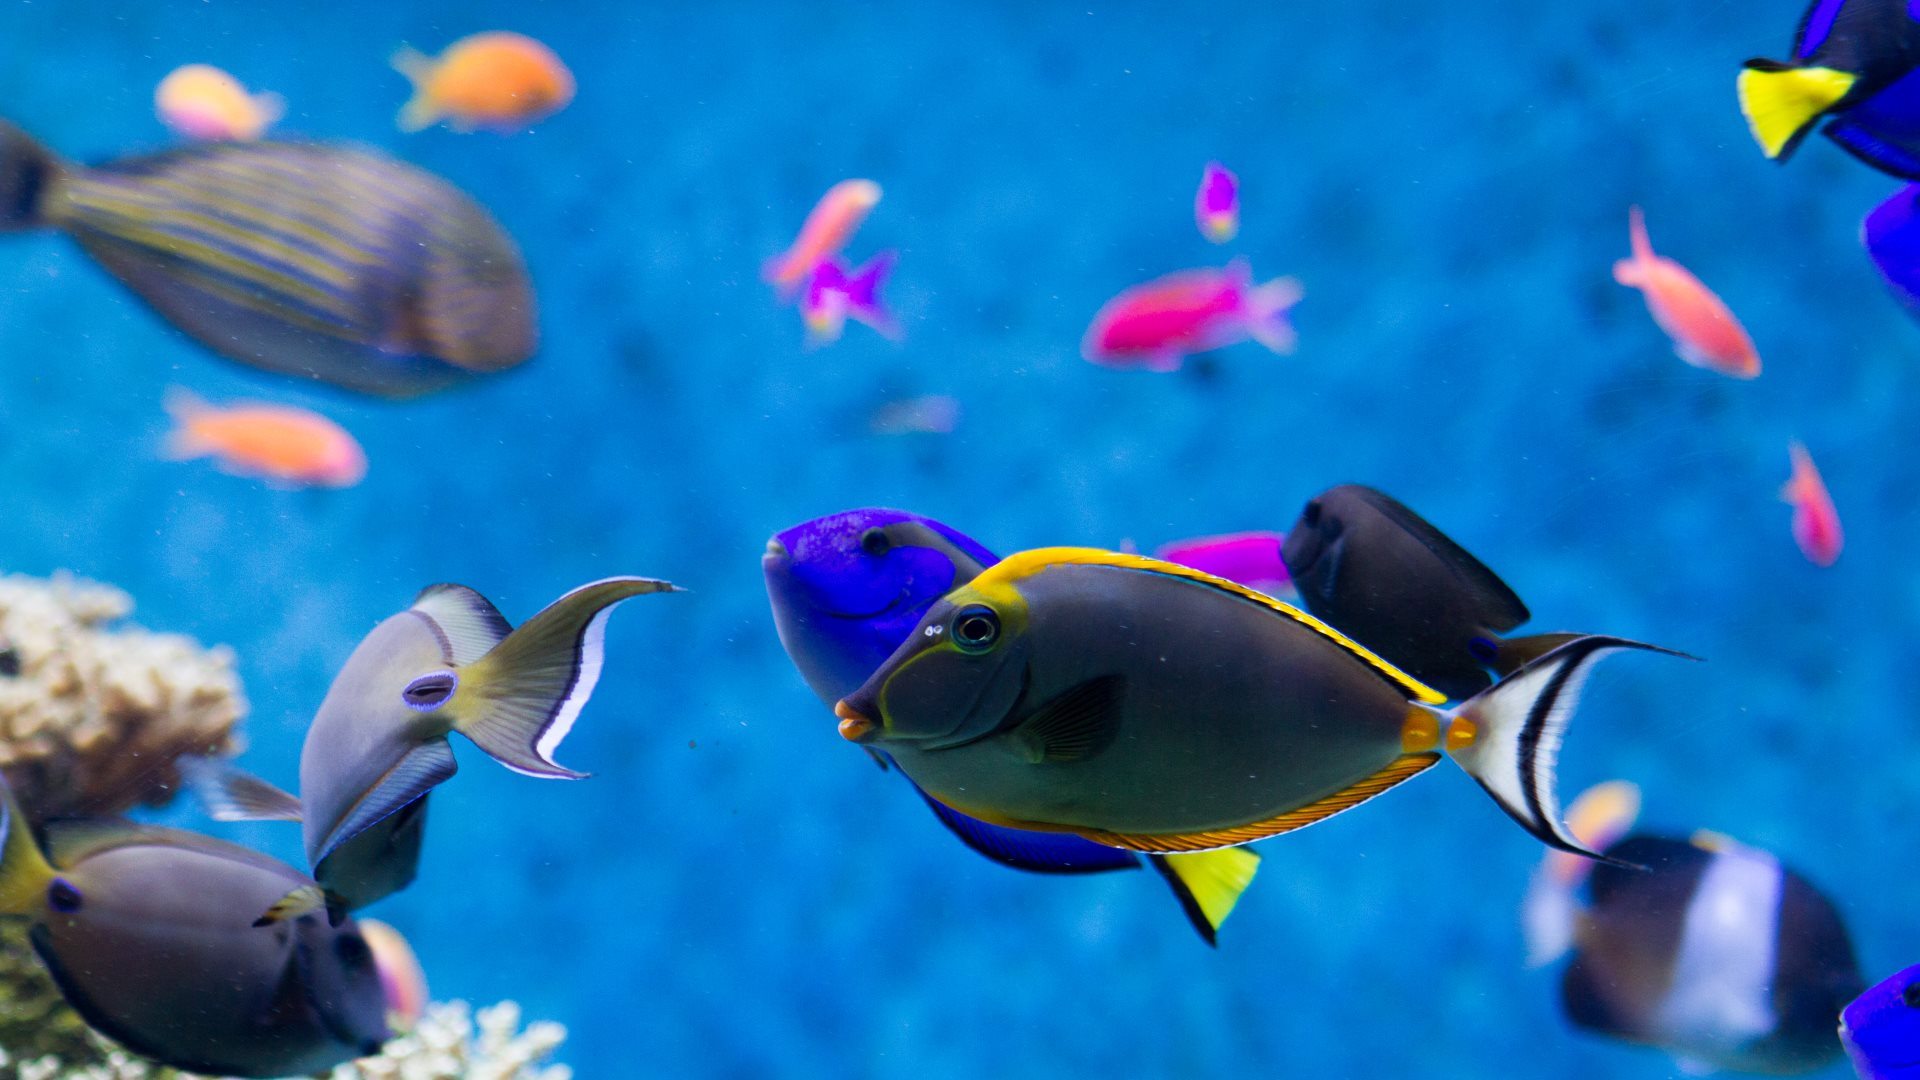 Aquarium screensaver fish tank 1080p hd - Fits On 1920x1200 1680x1050 1440x900 High Definition Hd 1080p